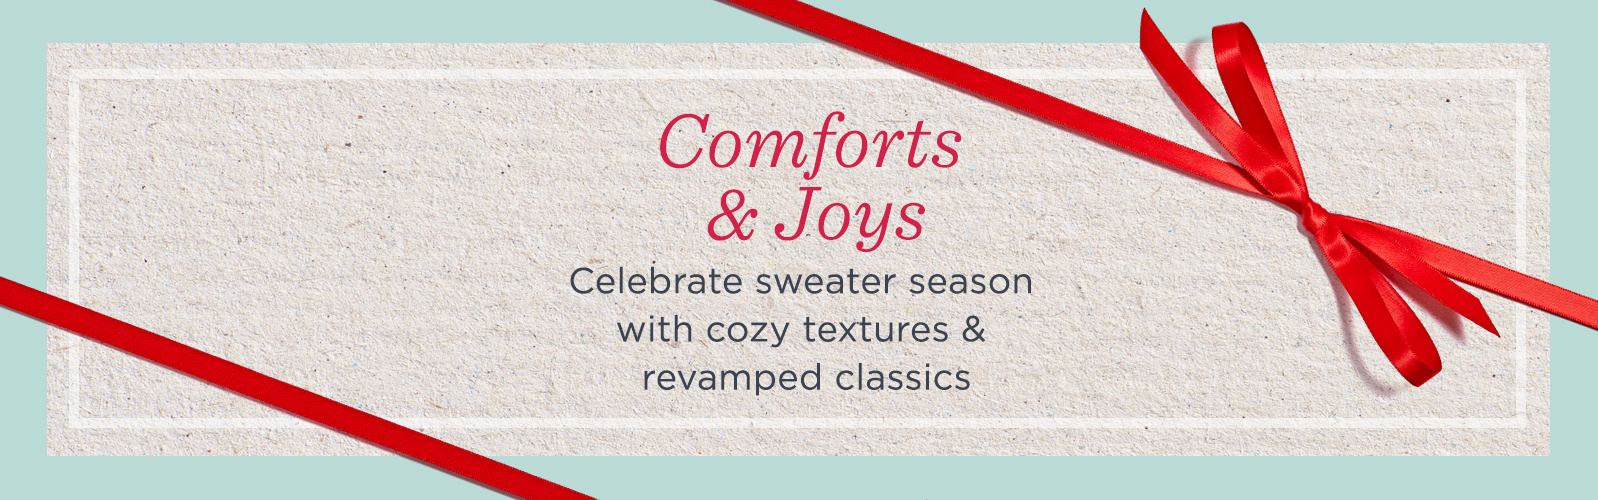 Comforts & Joys. Celebrate sweater season with cozy textures & revamped classics